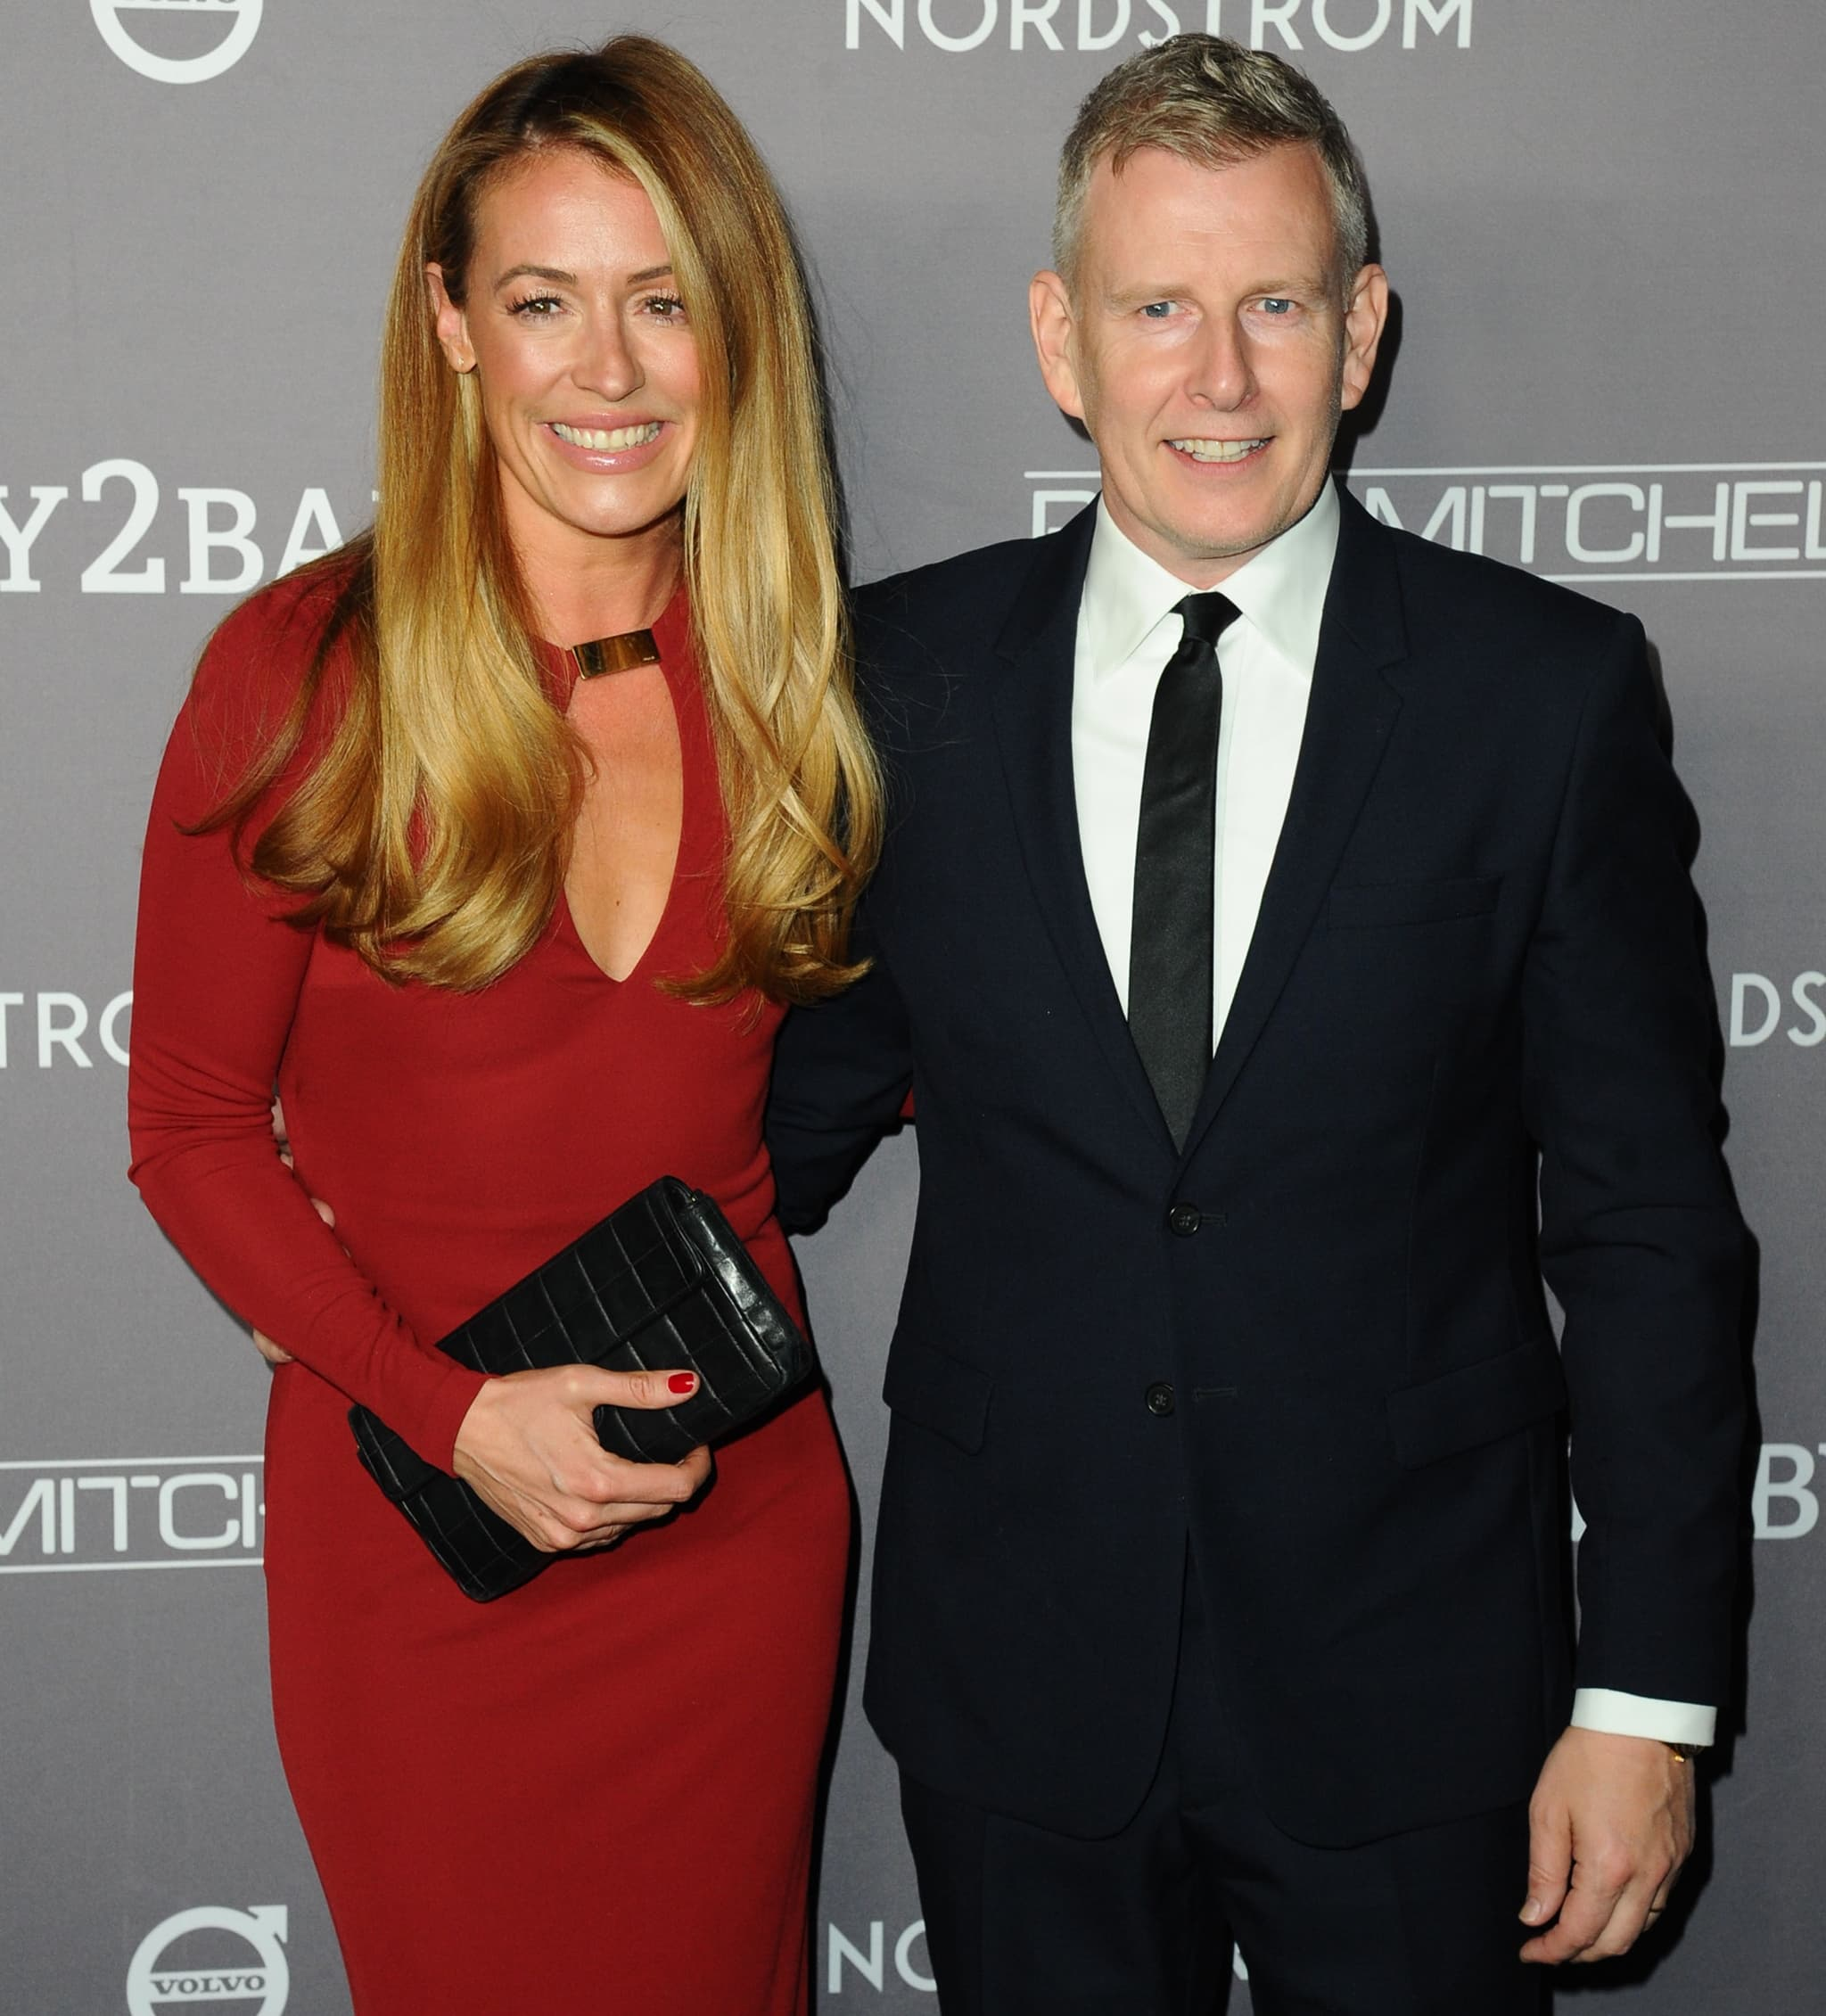 Cat Deeley married comedian and television presenter Patrick Kielty on September 30, 2012, in Rome